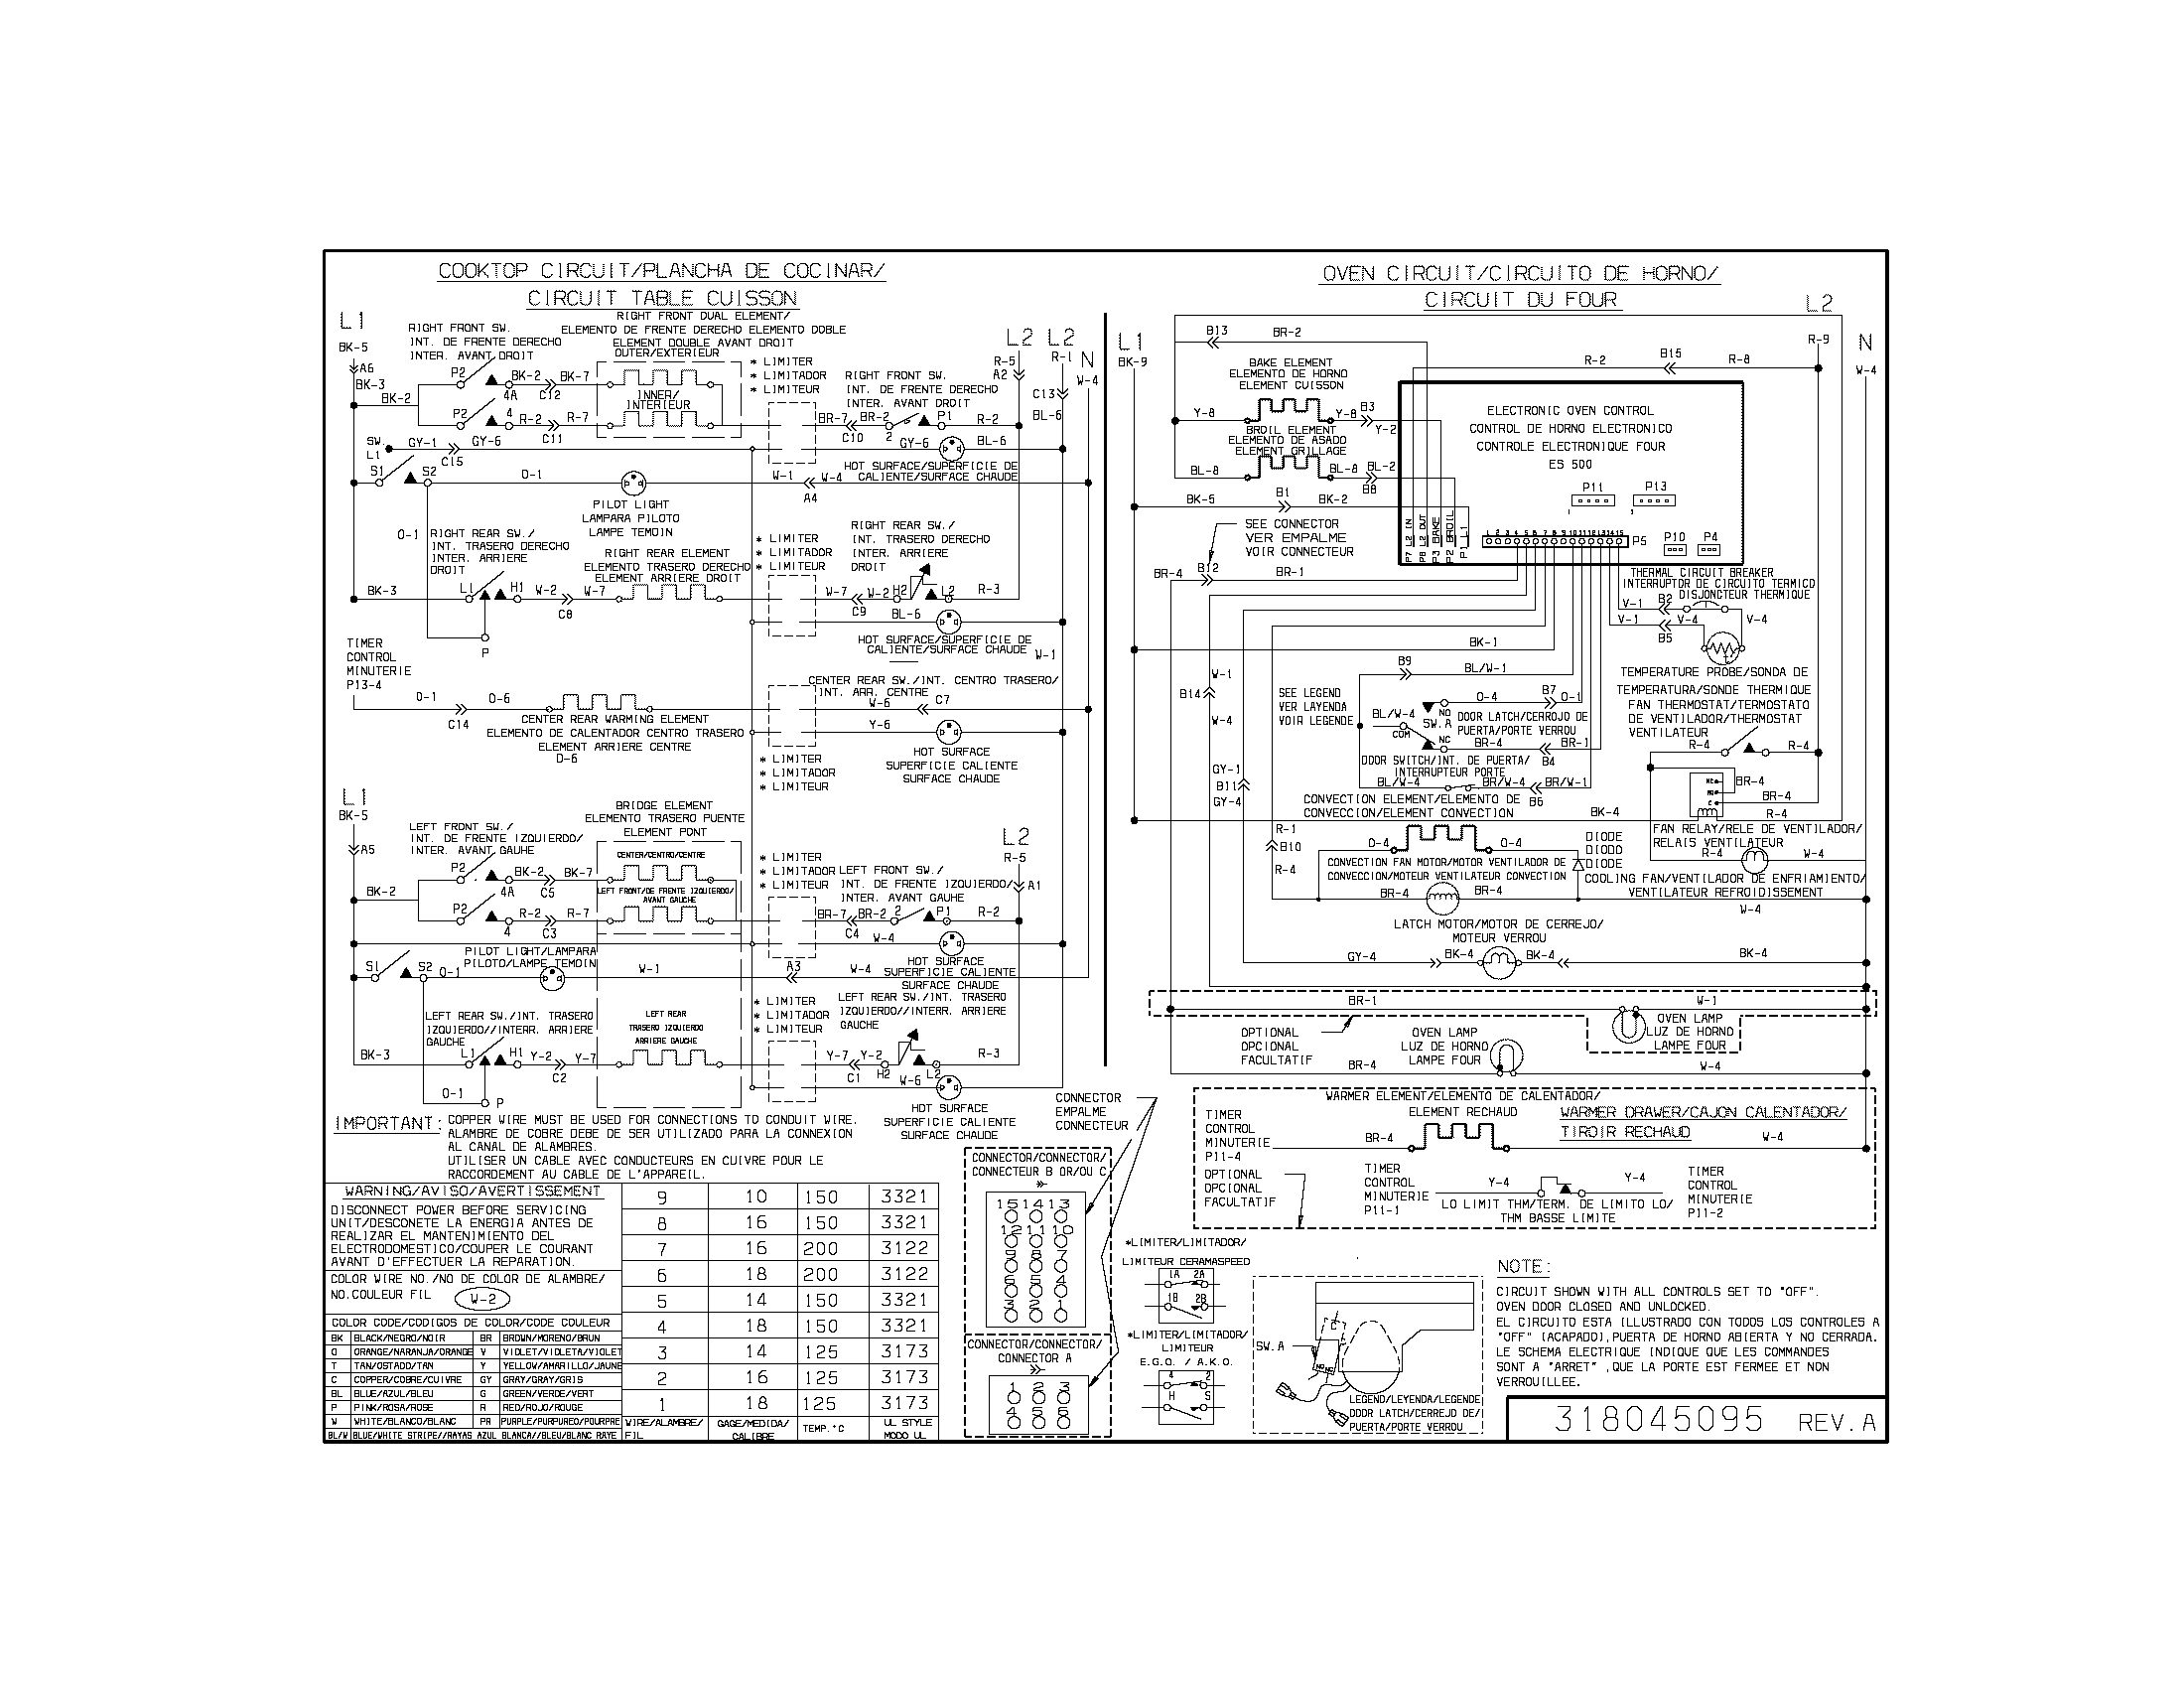 wiring diagram parts frigidaire stove wiring diagram frigidaire washer wiring diagram Frigidaire Oven Wiring Diagram at bakdesigns.co